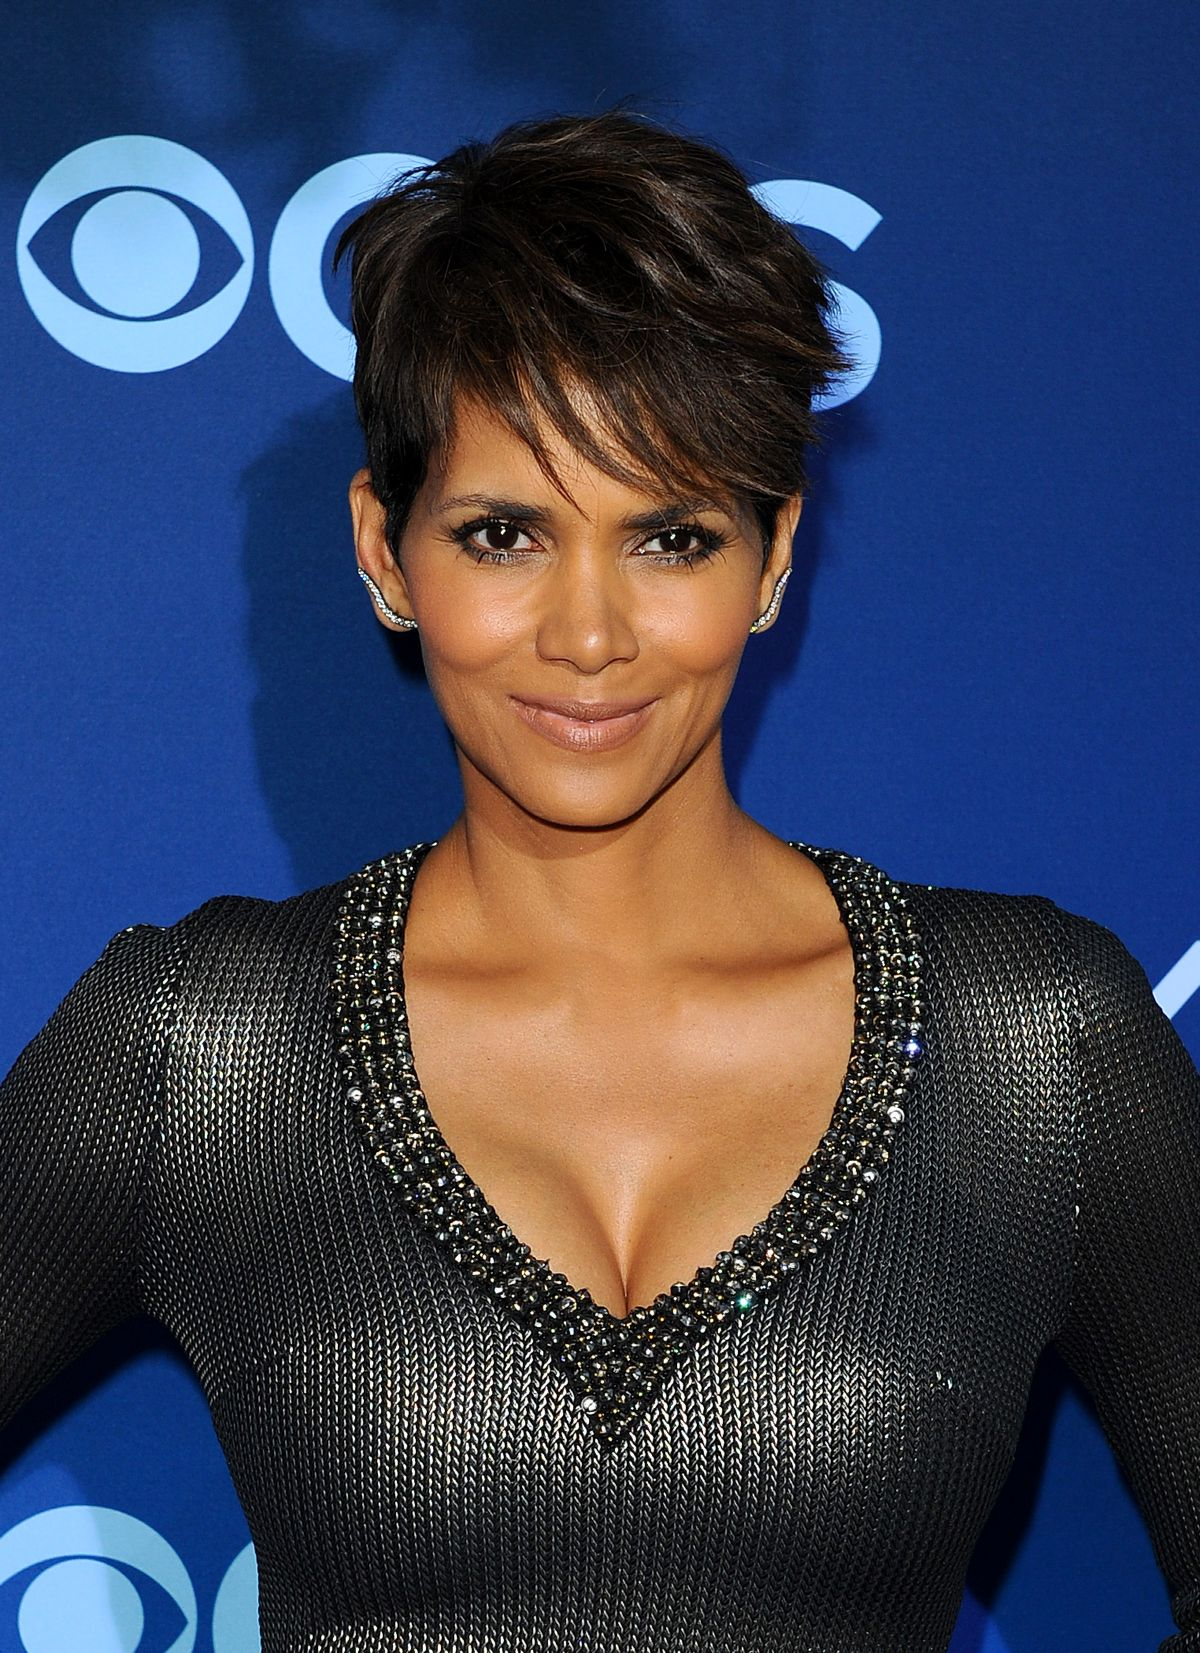 HALLE BERRY at Extant Premiere in Los Angeles - HawtCelebs